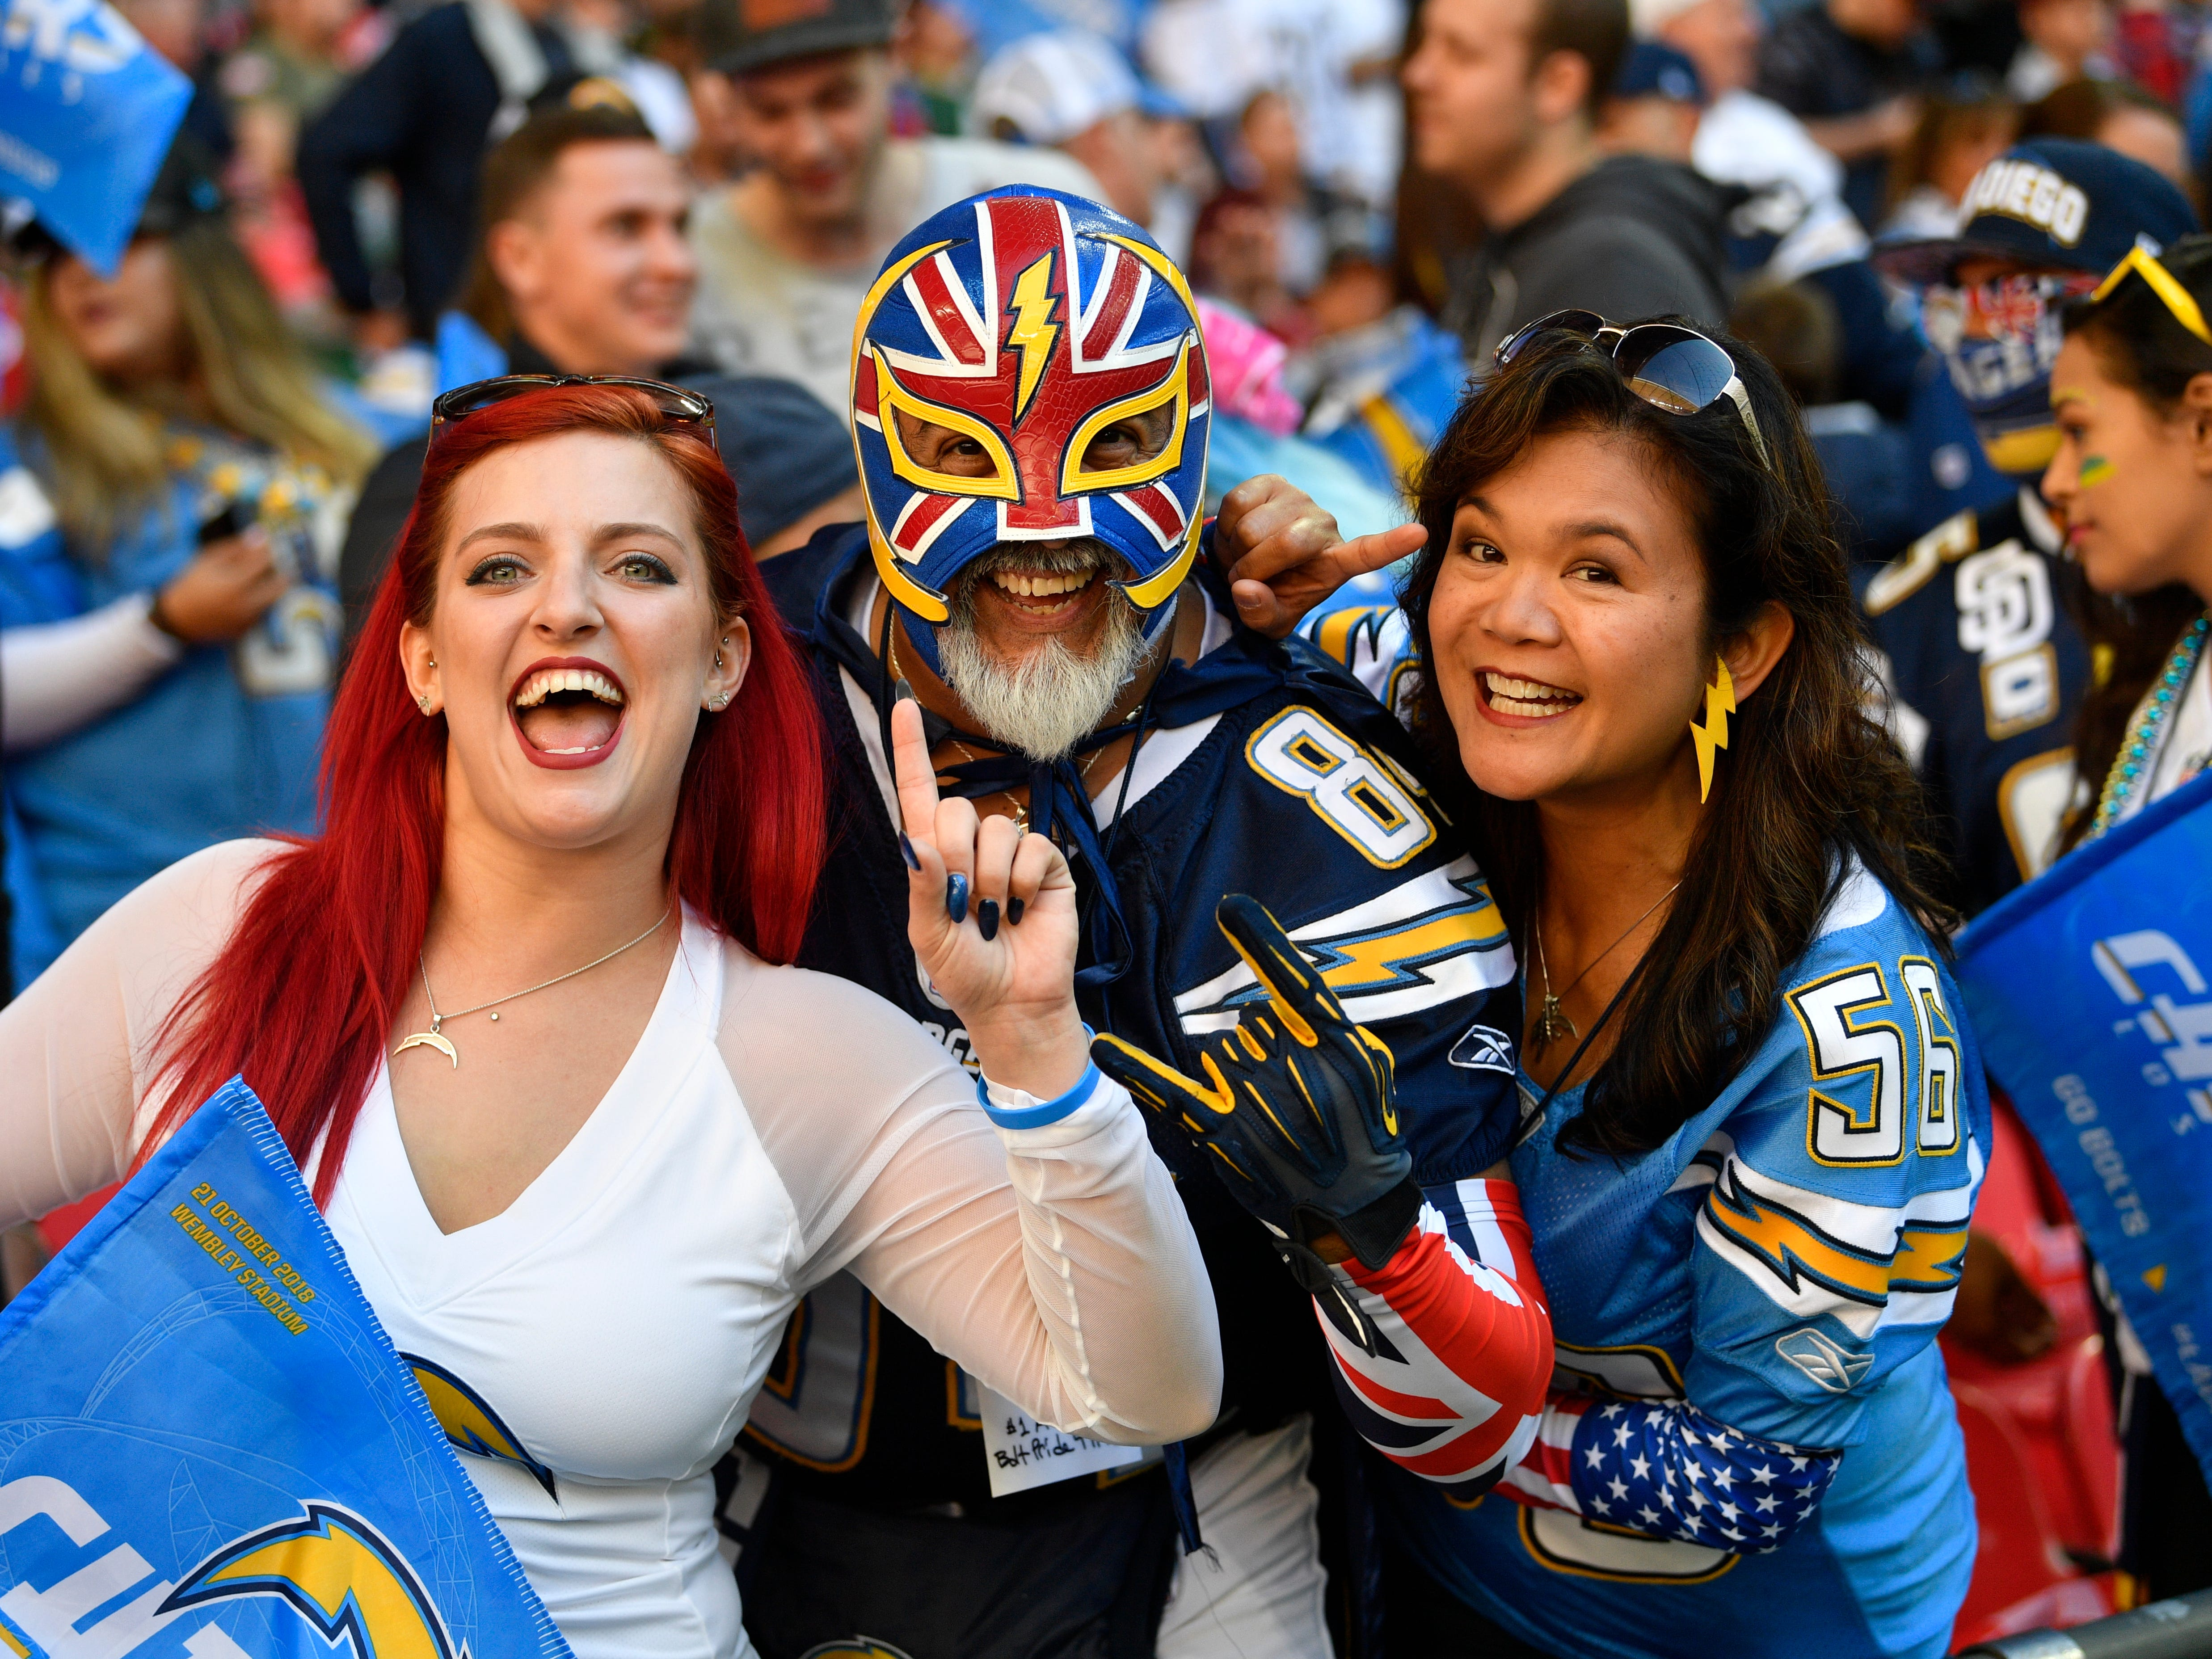 Chargers fans before the NFL game between Tennesse Titans and LA Chargers at Wembley Stadium in London, Britain, 21 October 2018.